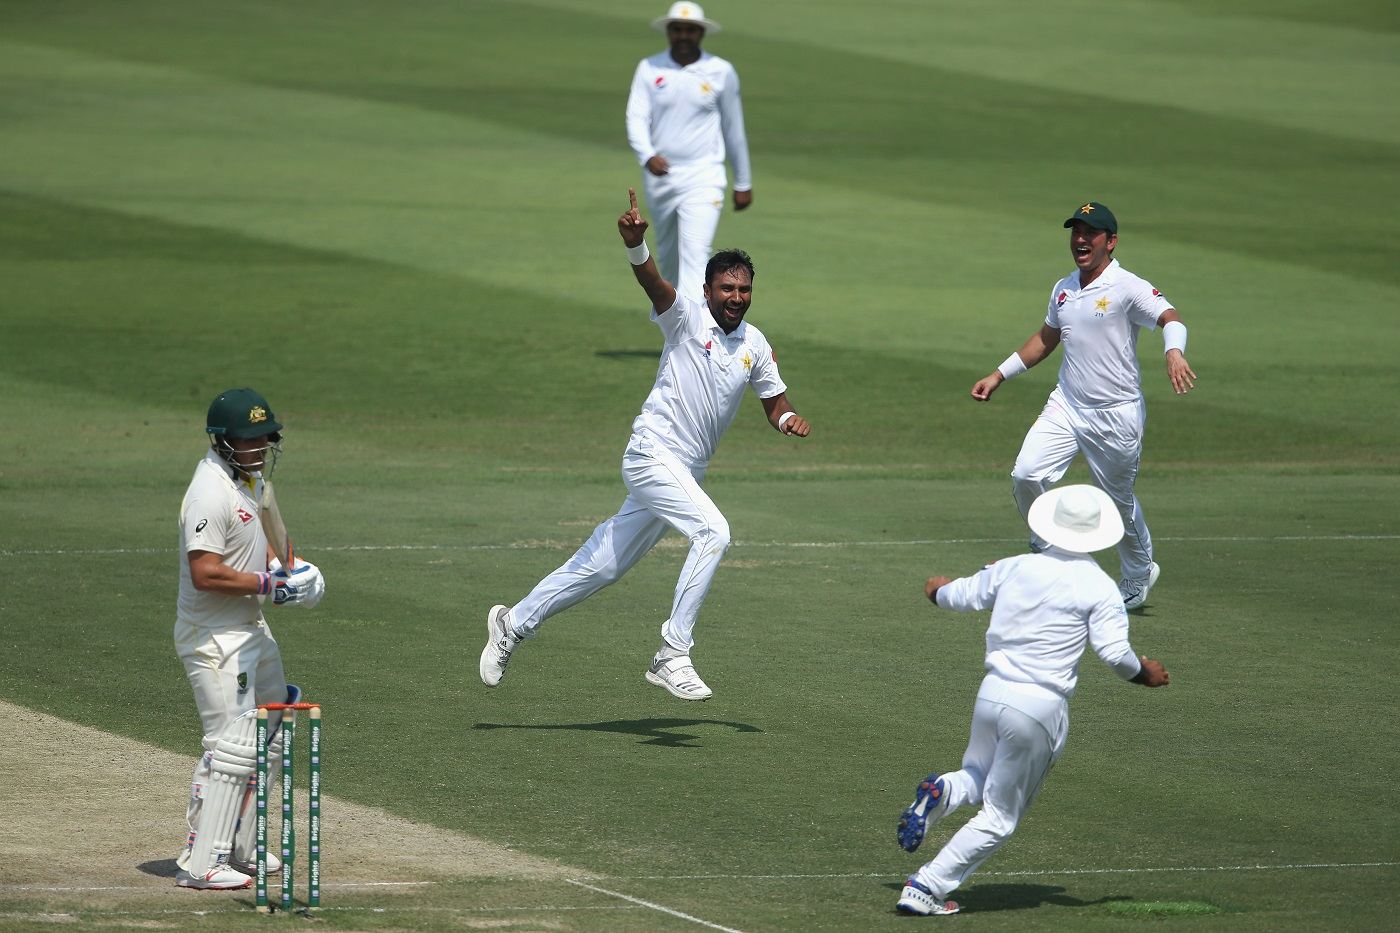 PAK 144/2  (44.0 ov, Azhar Ali 54*, Haris Sohail 17*, NM Lyon 1/59) - Stumps | Match Report | ESPNCricinfo thumbnail